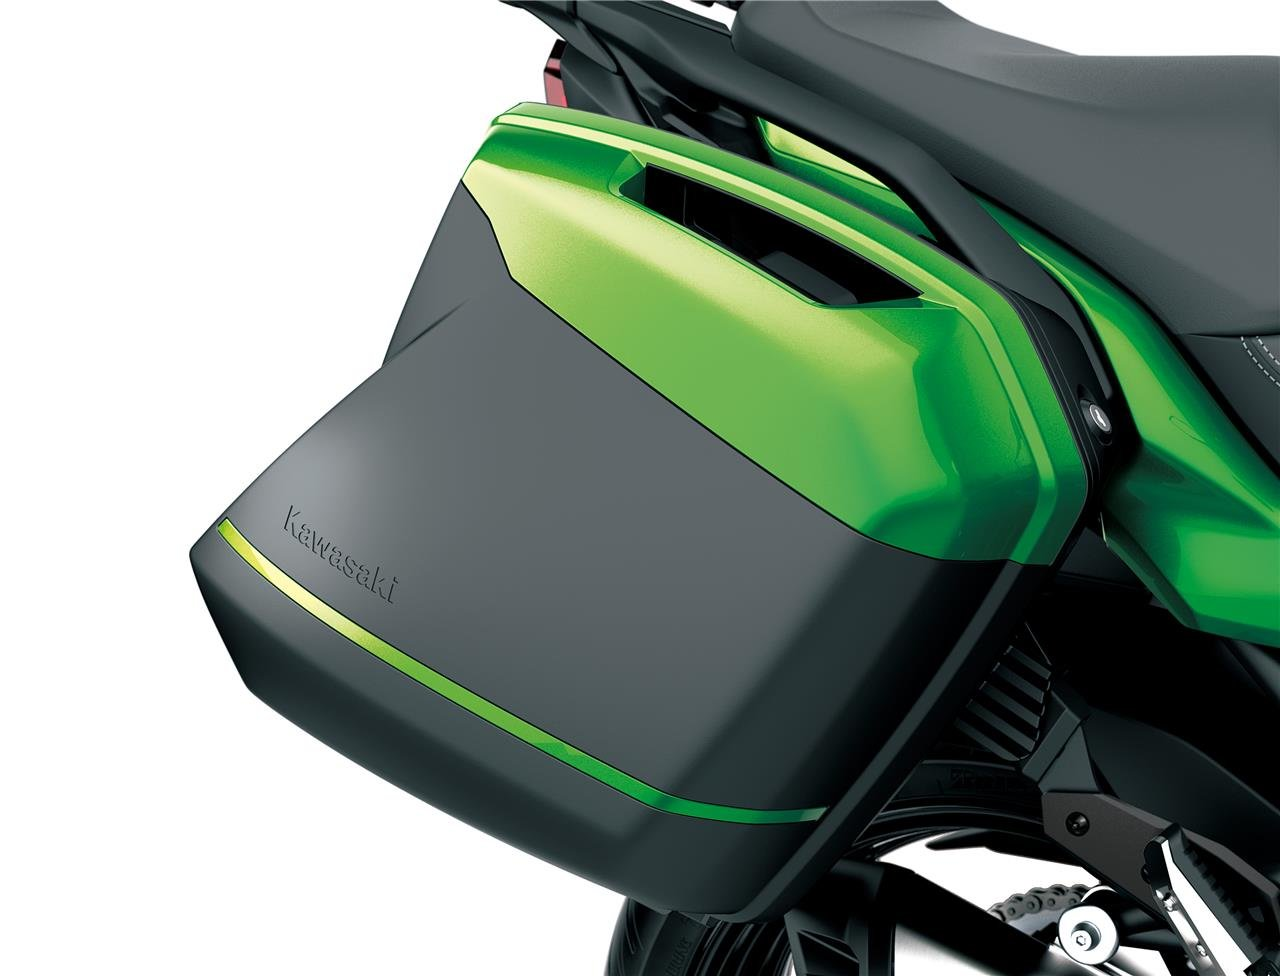 New 2020 Kawasaki Ninja H2 SX SE + Perf Tourer**£1,500 PAID* For Sale (picture 4 of 6)